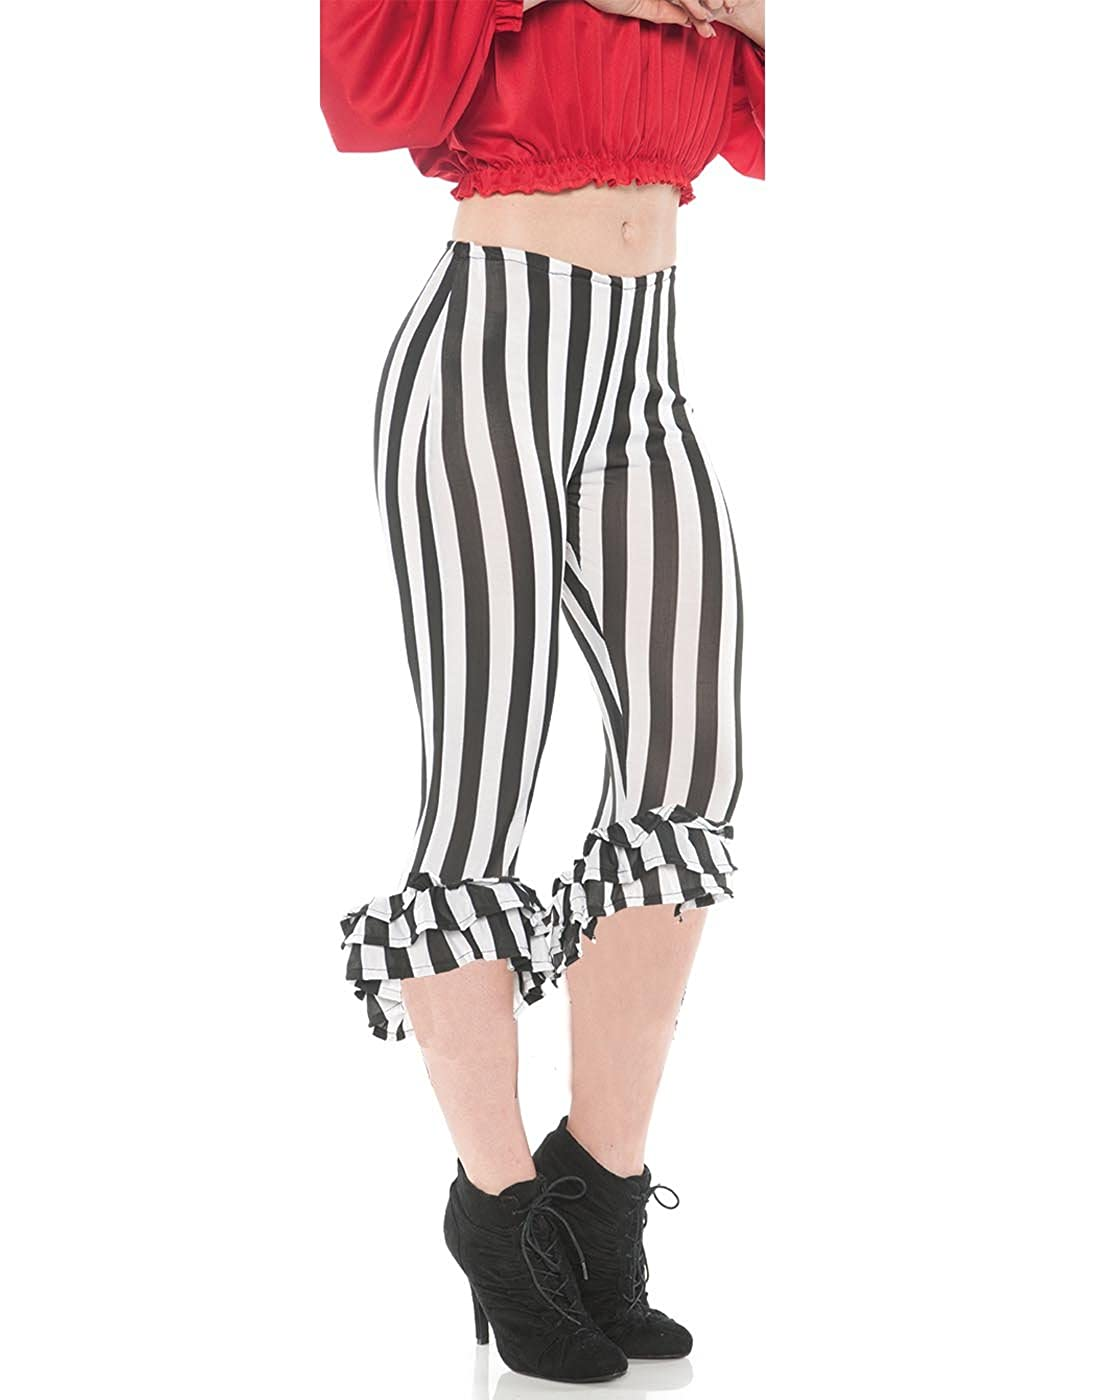 Women's Sexy Pirate Costume Black & White Stripe Ruffle Leggings